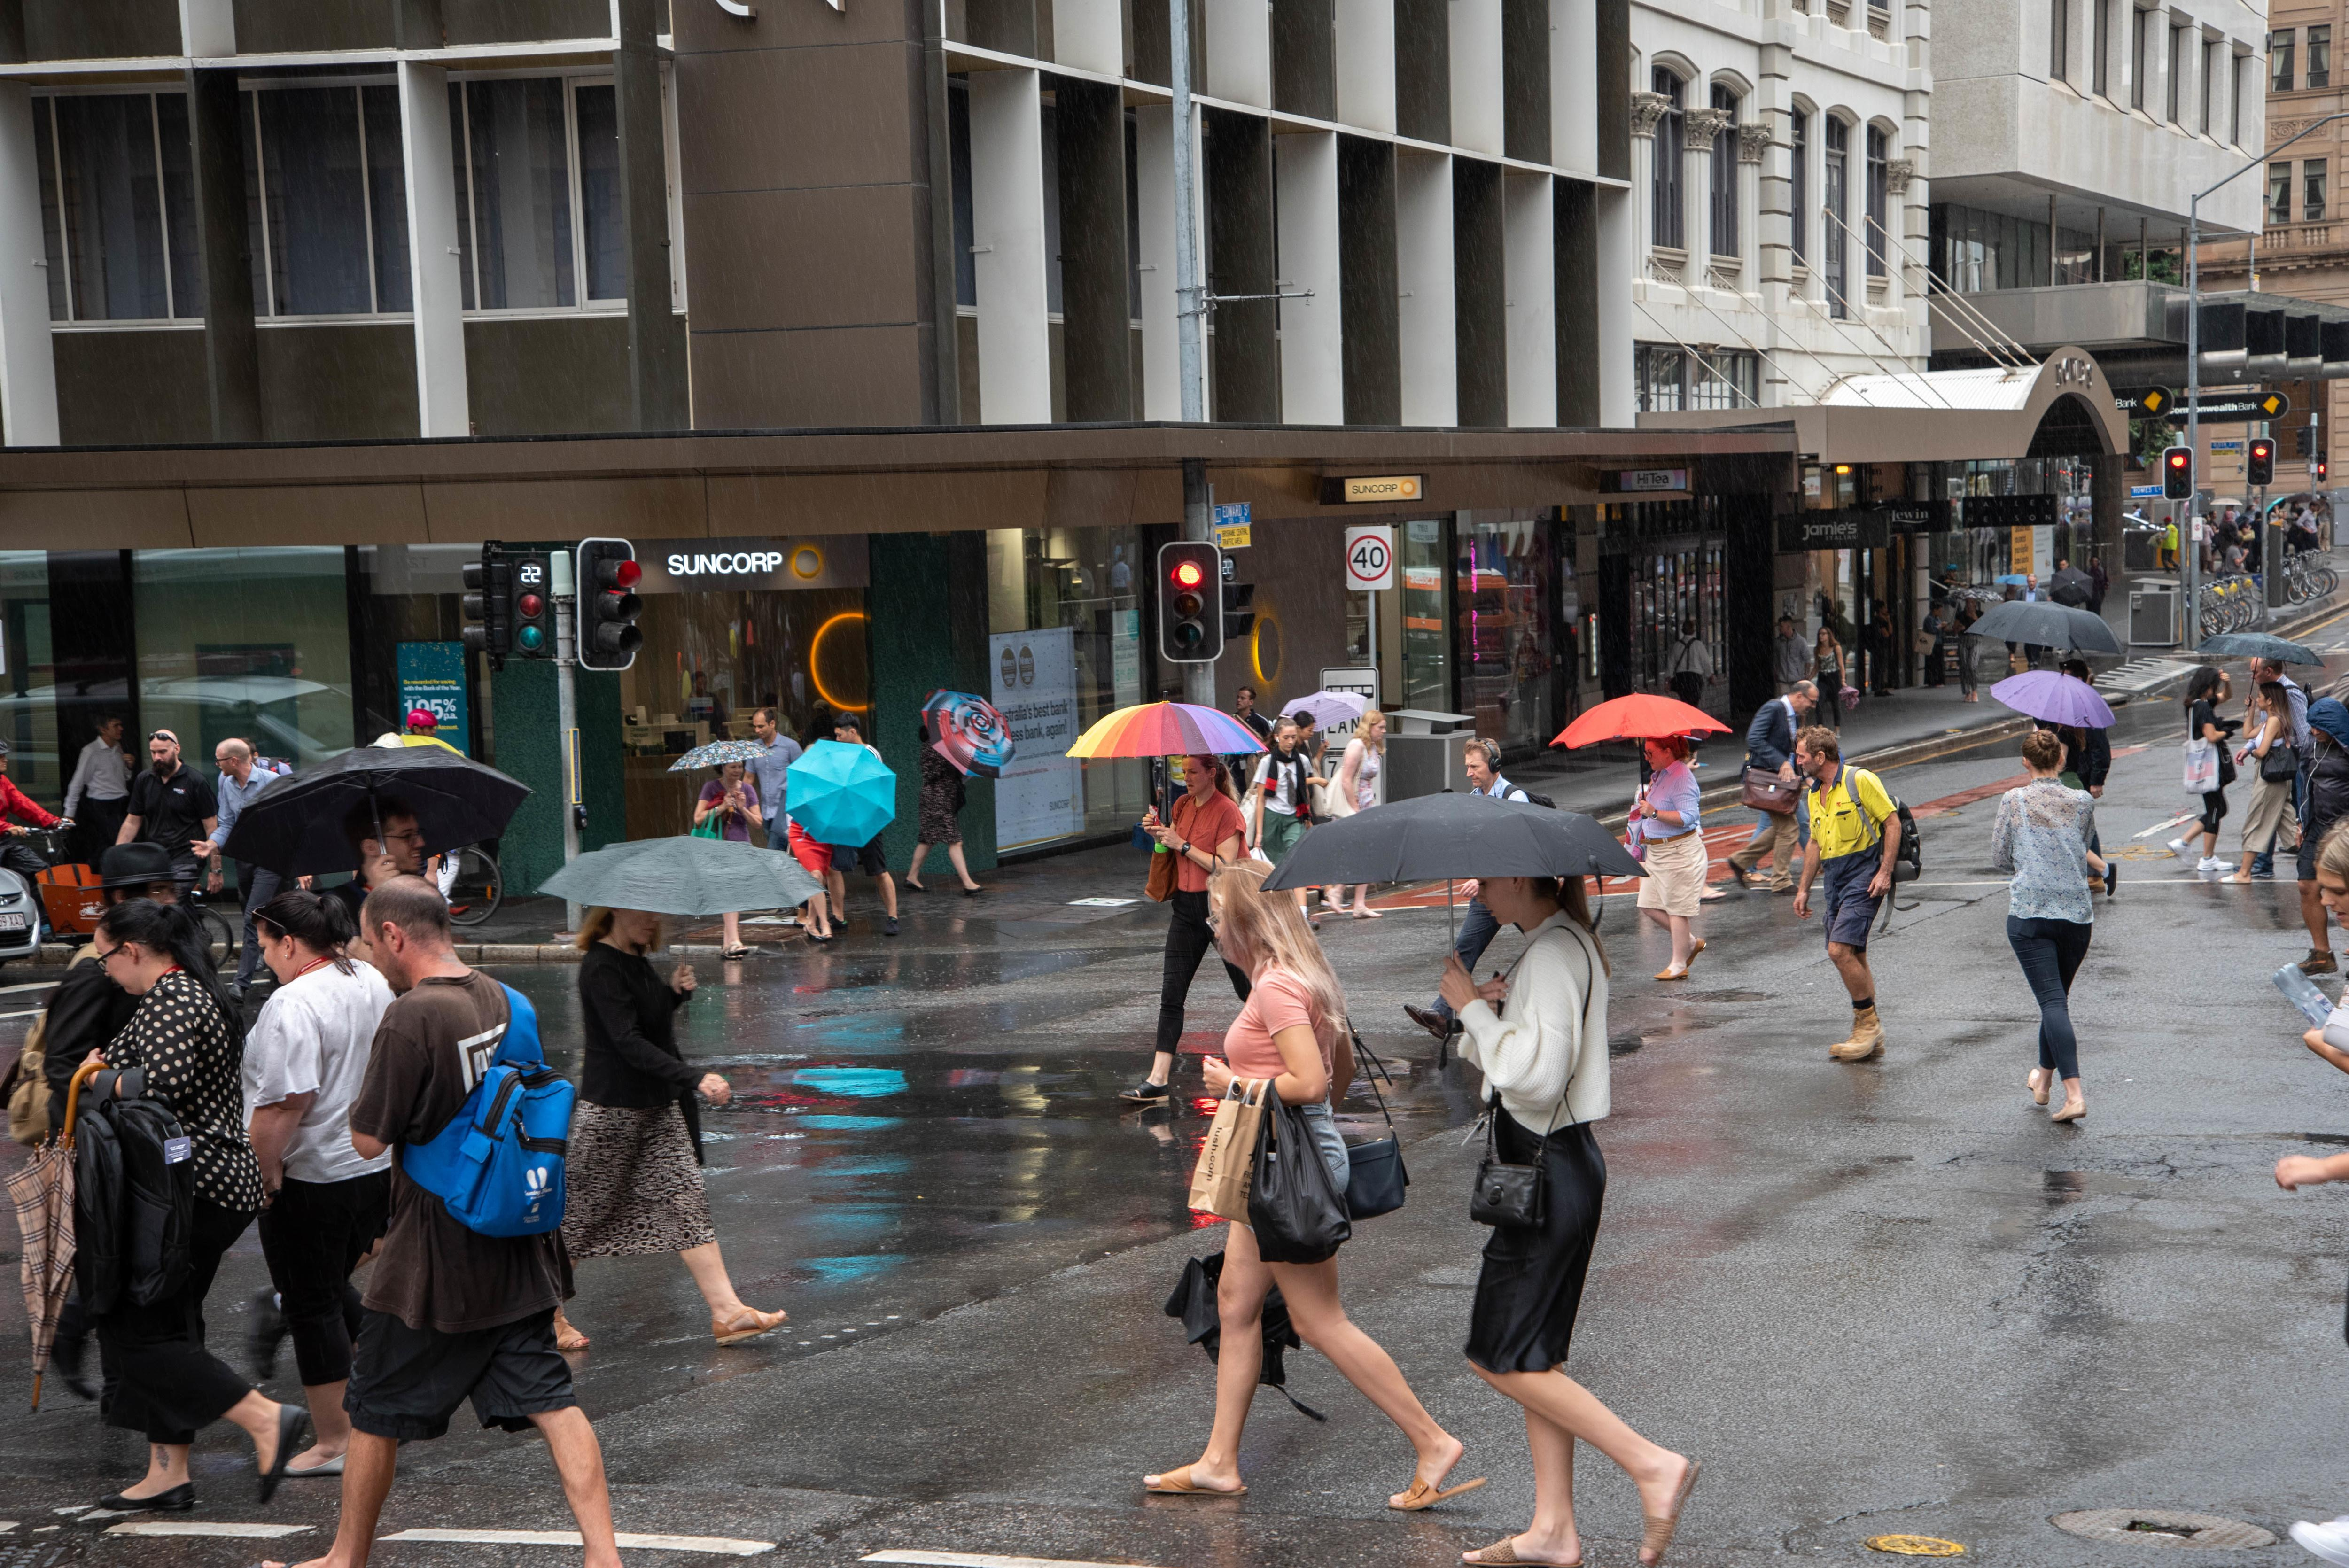 726,000 out of a job: Aussie jobless rate jumps to 5.3%